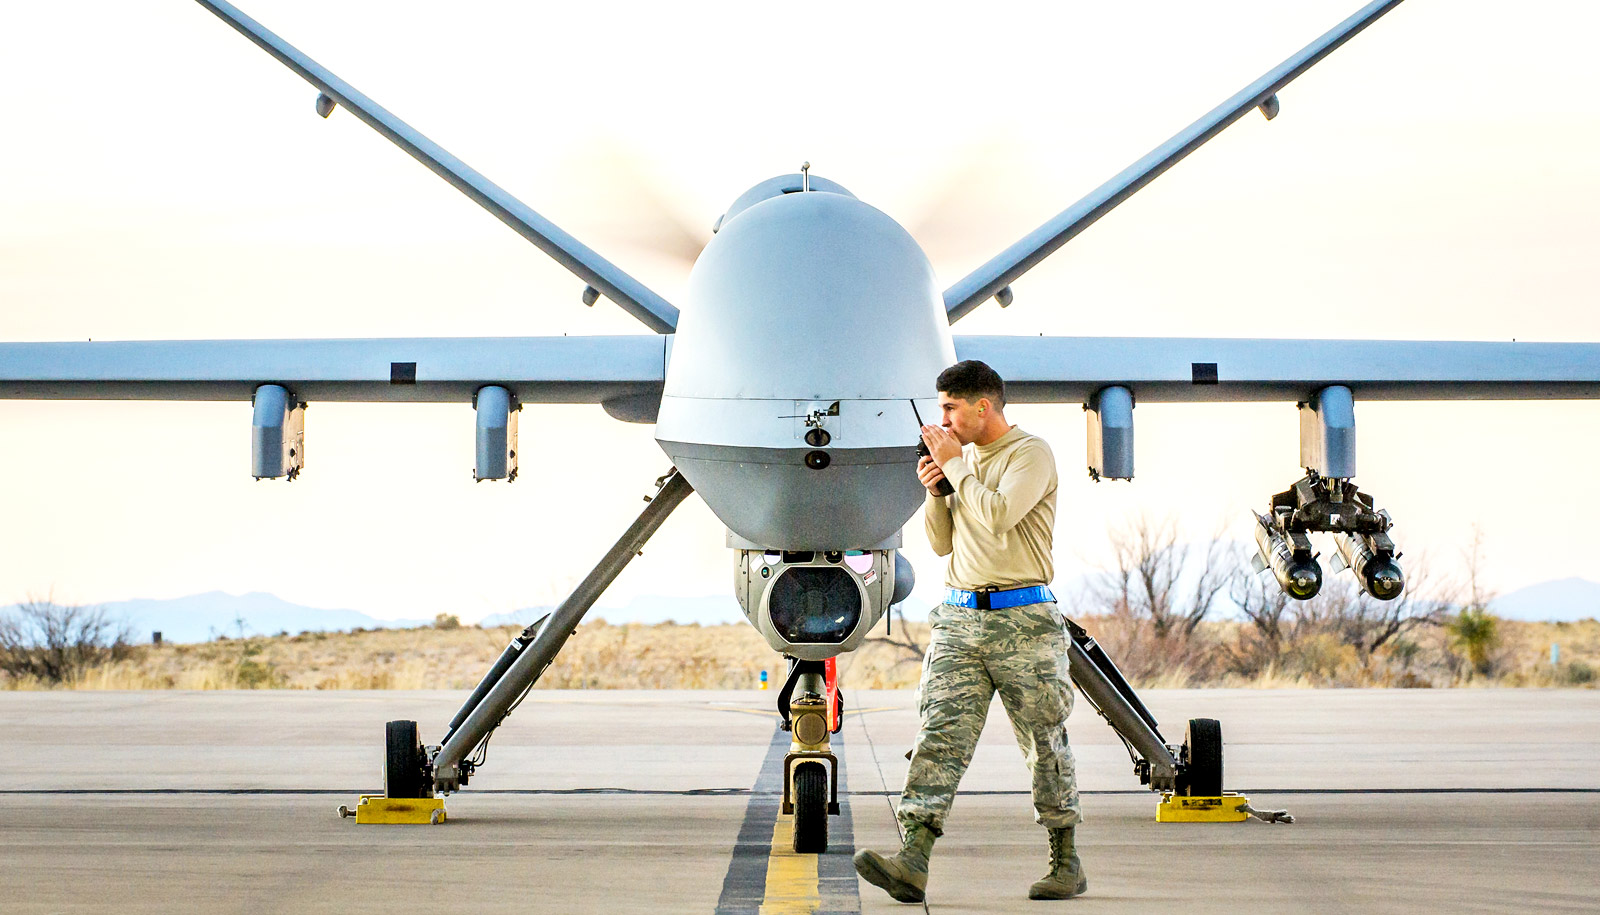 Next Gen Drones Will Enable Cheap Credible Threats